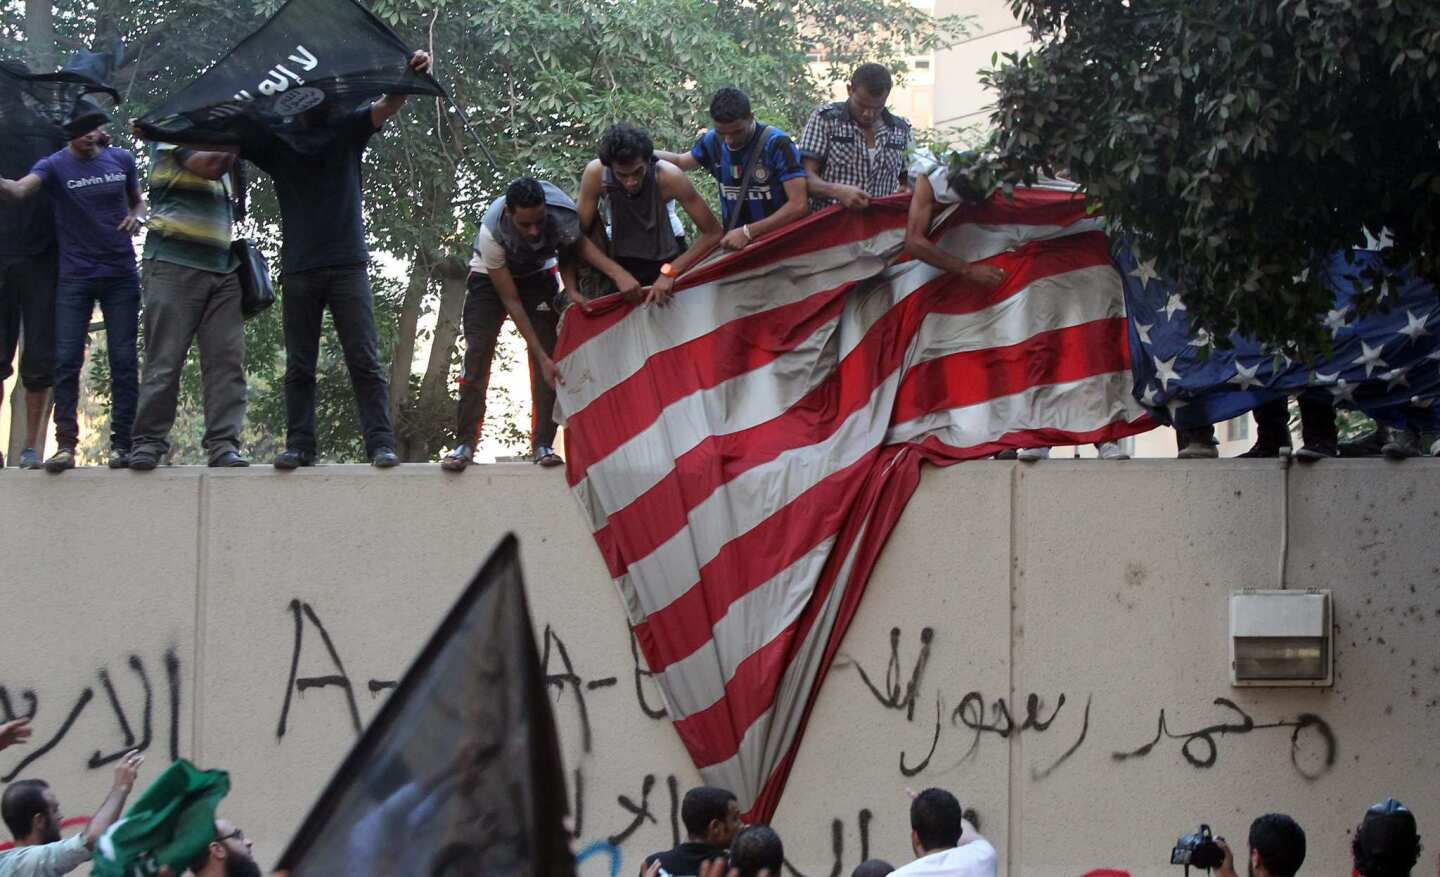 Egyptian protesters take away the U.S. flag in front the U.S. Embassy in Cairo. The demonstrators are angry over a video they say defames the prophet Muhammad.